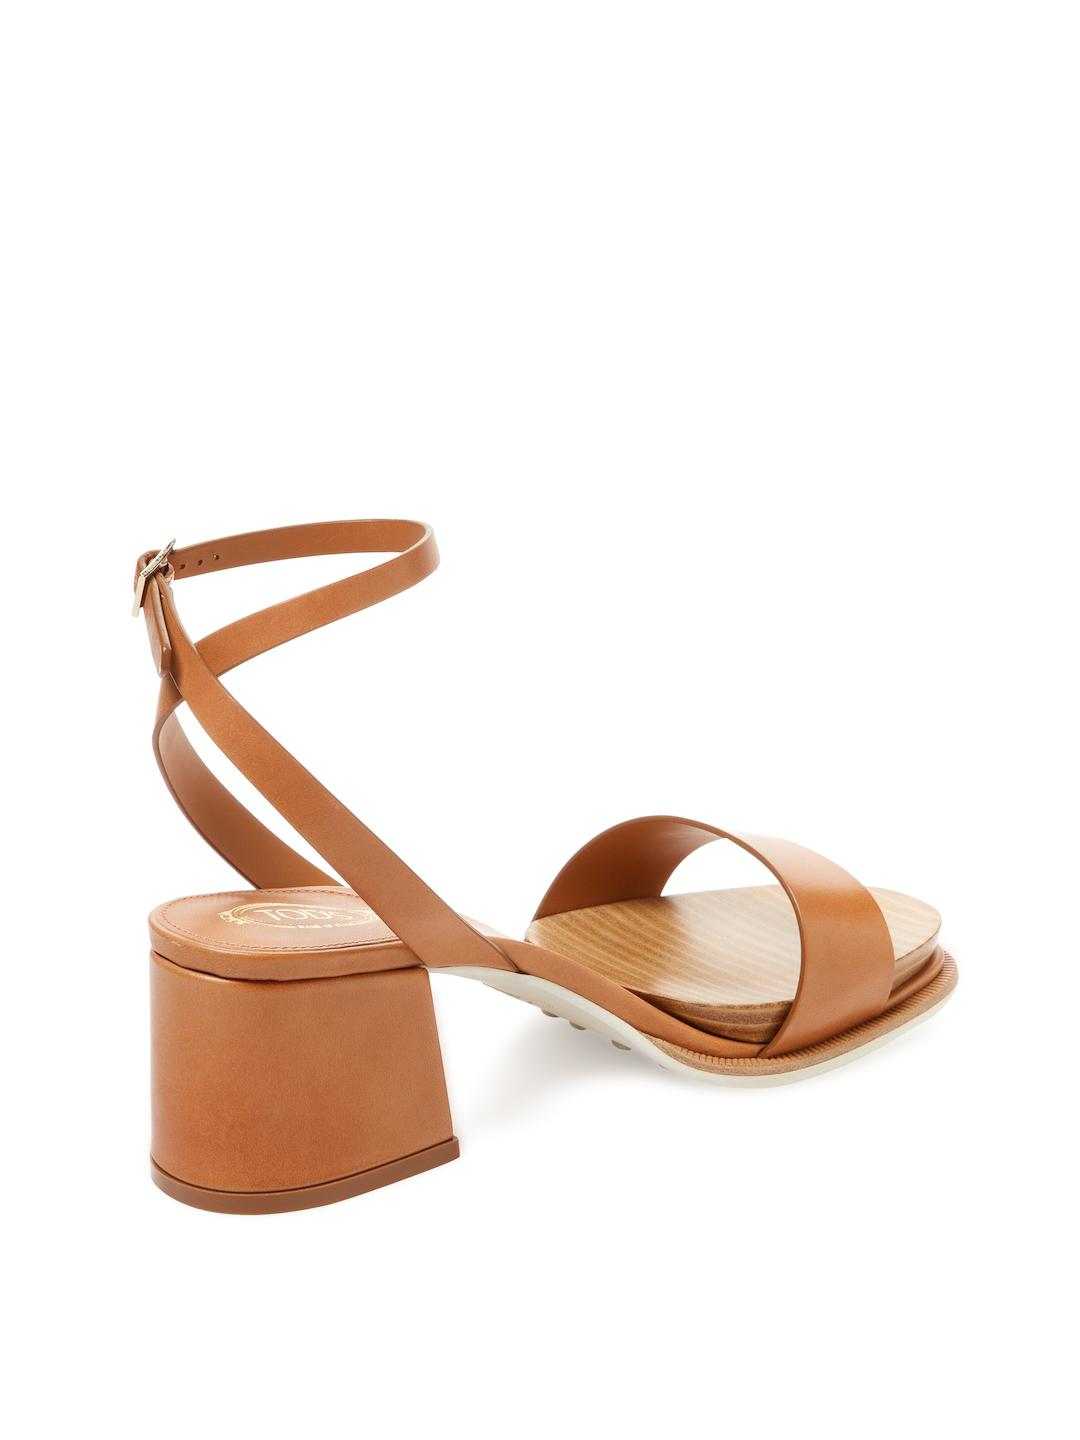 09baa0322c5b6 Lyst - Tod s Leather Block Heel Sandal in Brown